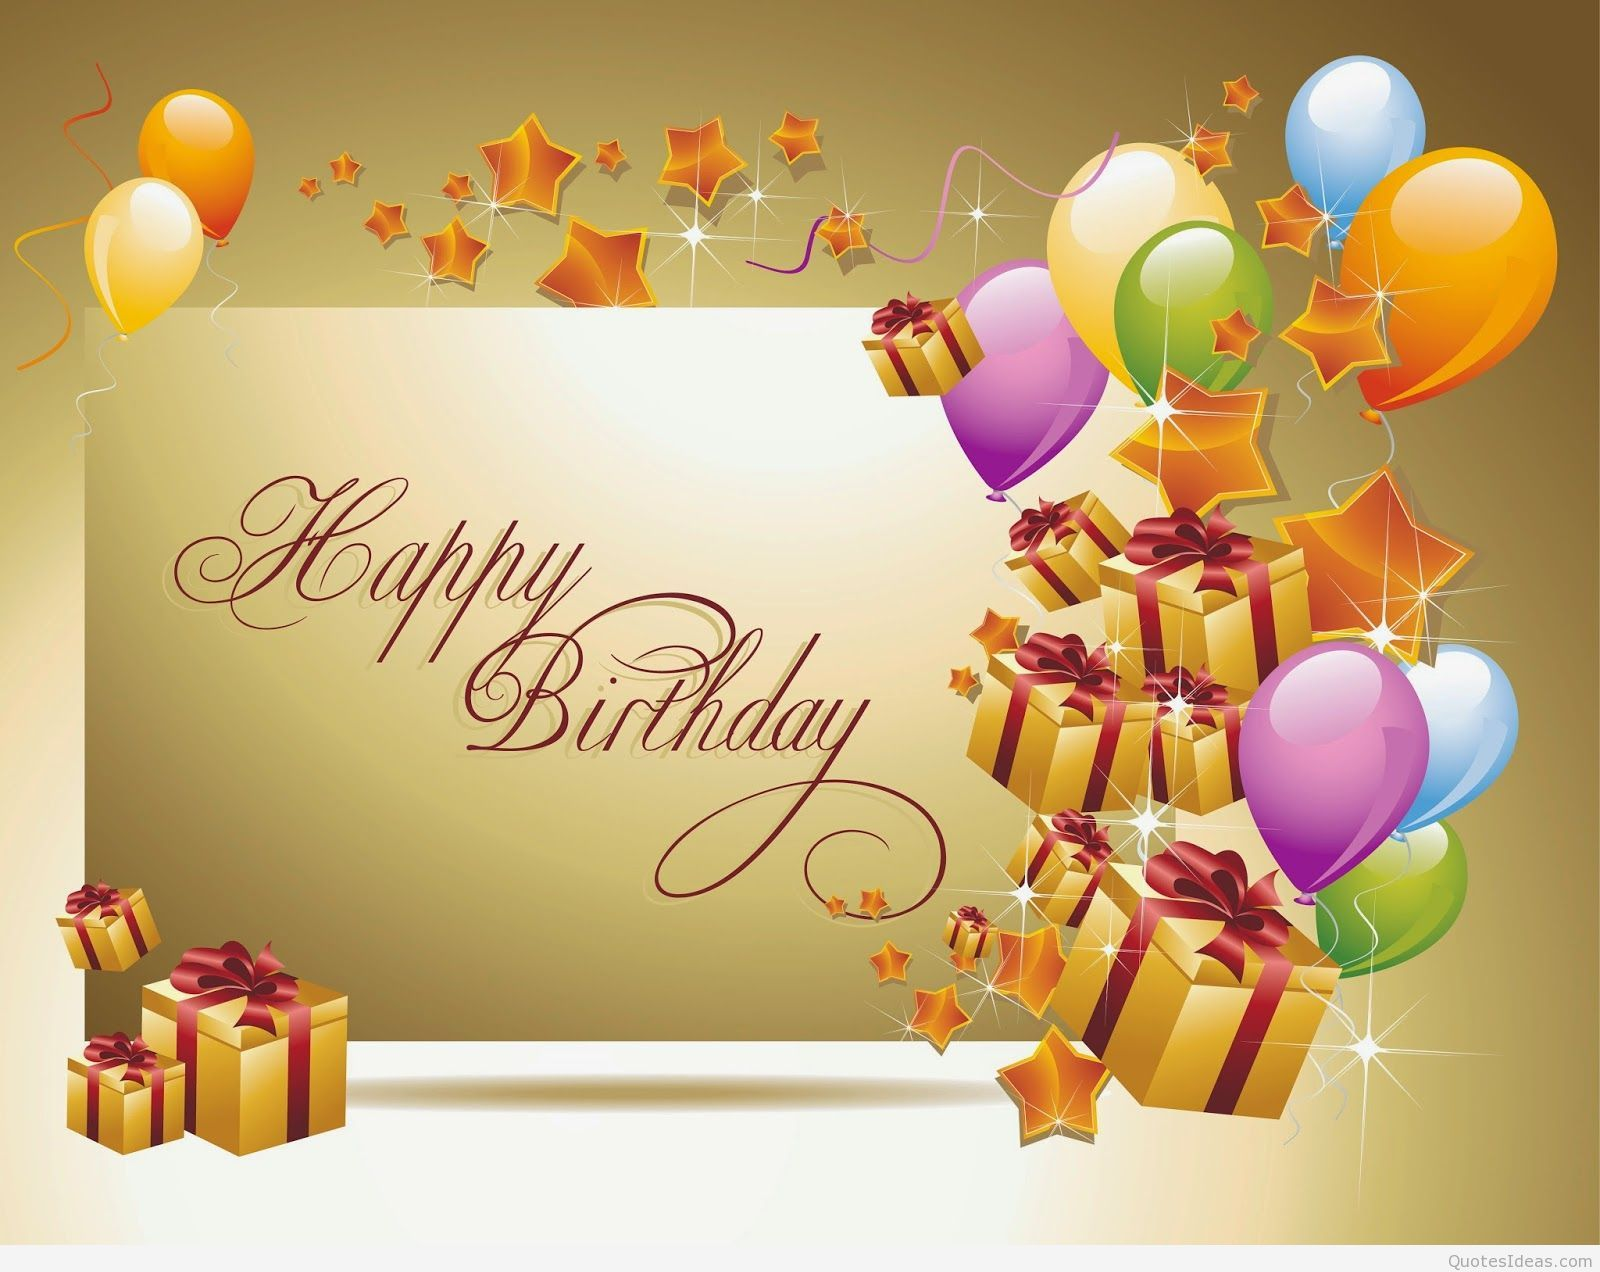 Happybirthdaygiftwallpaperjpg 16001272 y Pinterest